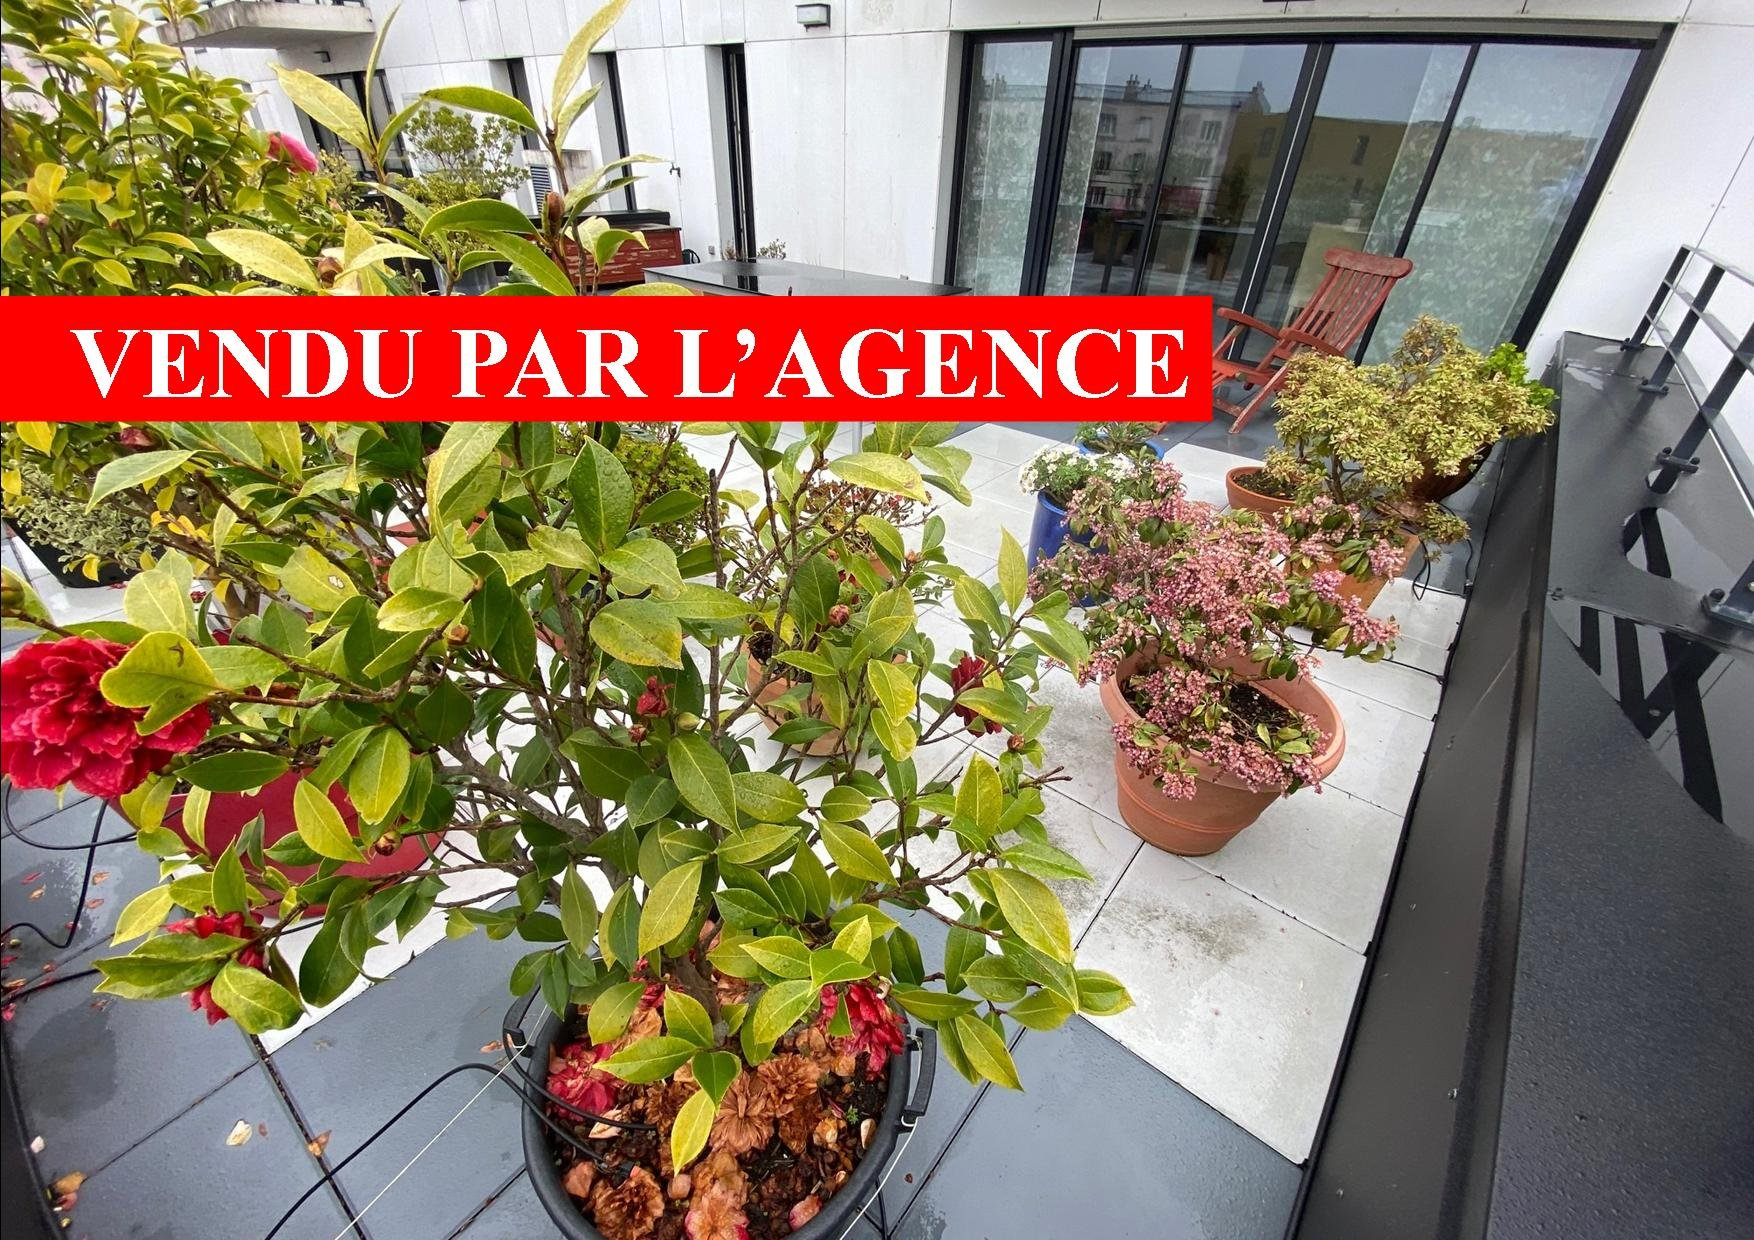 RESIDENCE STANDING 2010 TERRASSE 54 M2 ASCENSEUR 2 PARKINGS PRIVES 3 CHAMBRES